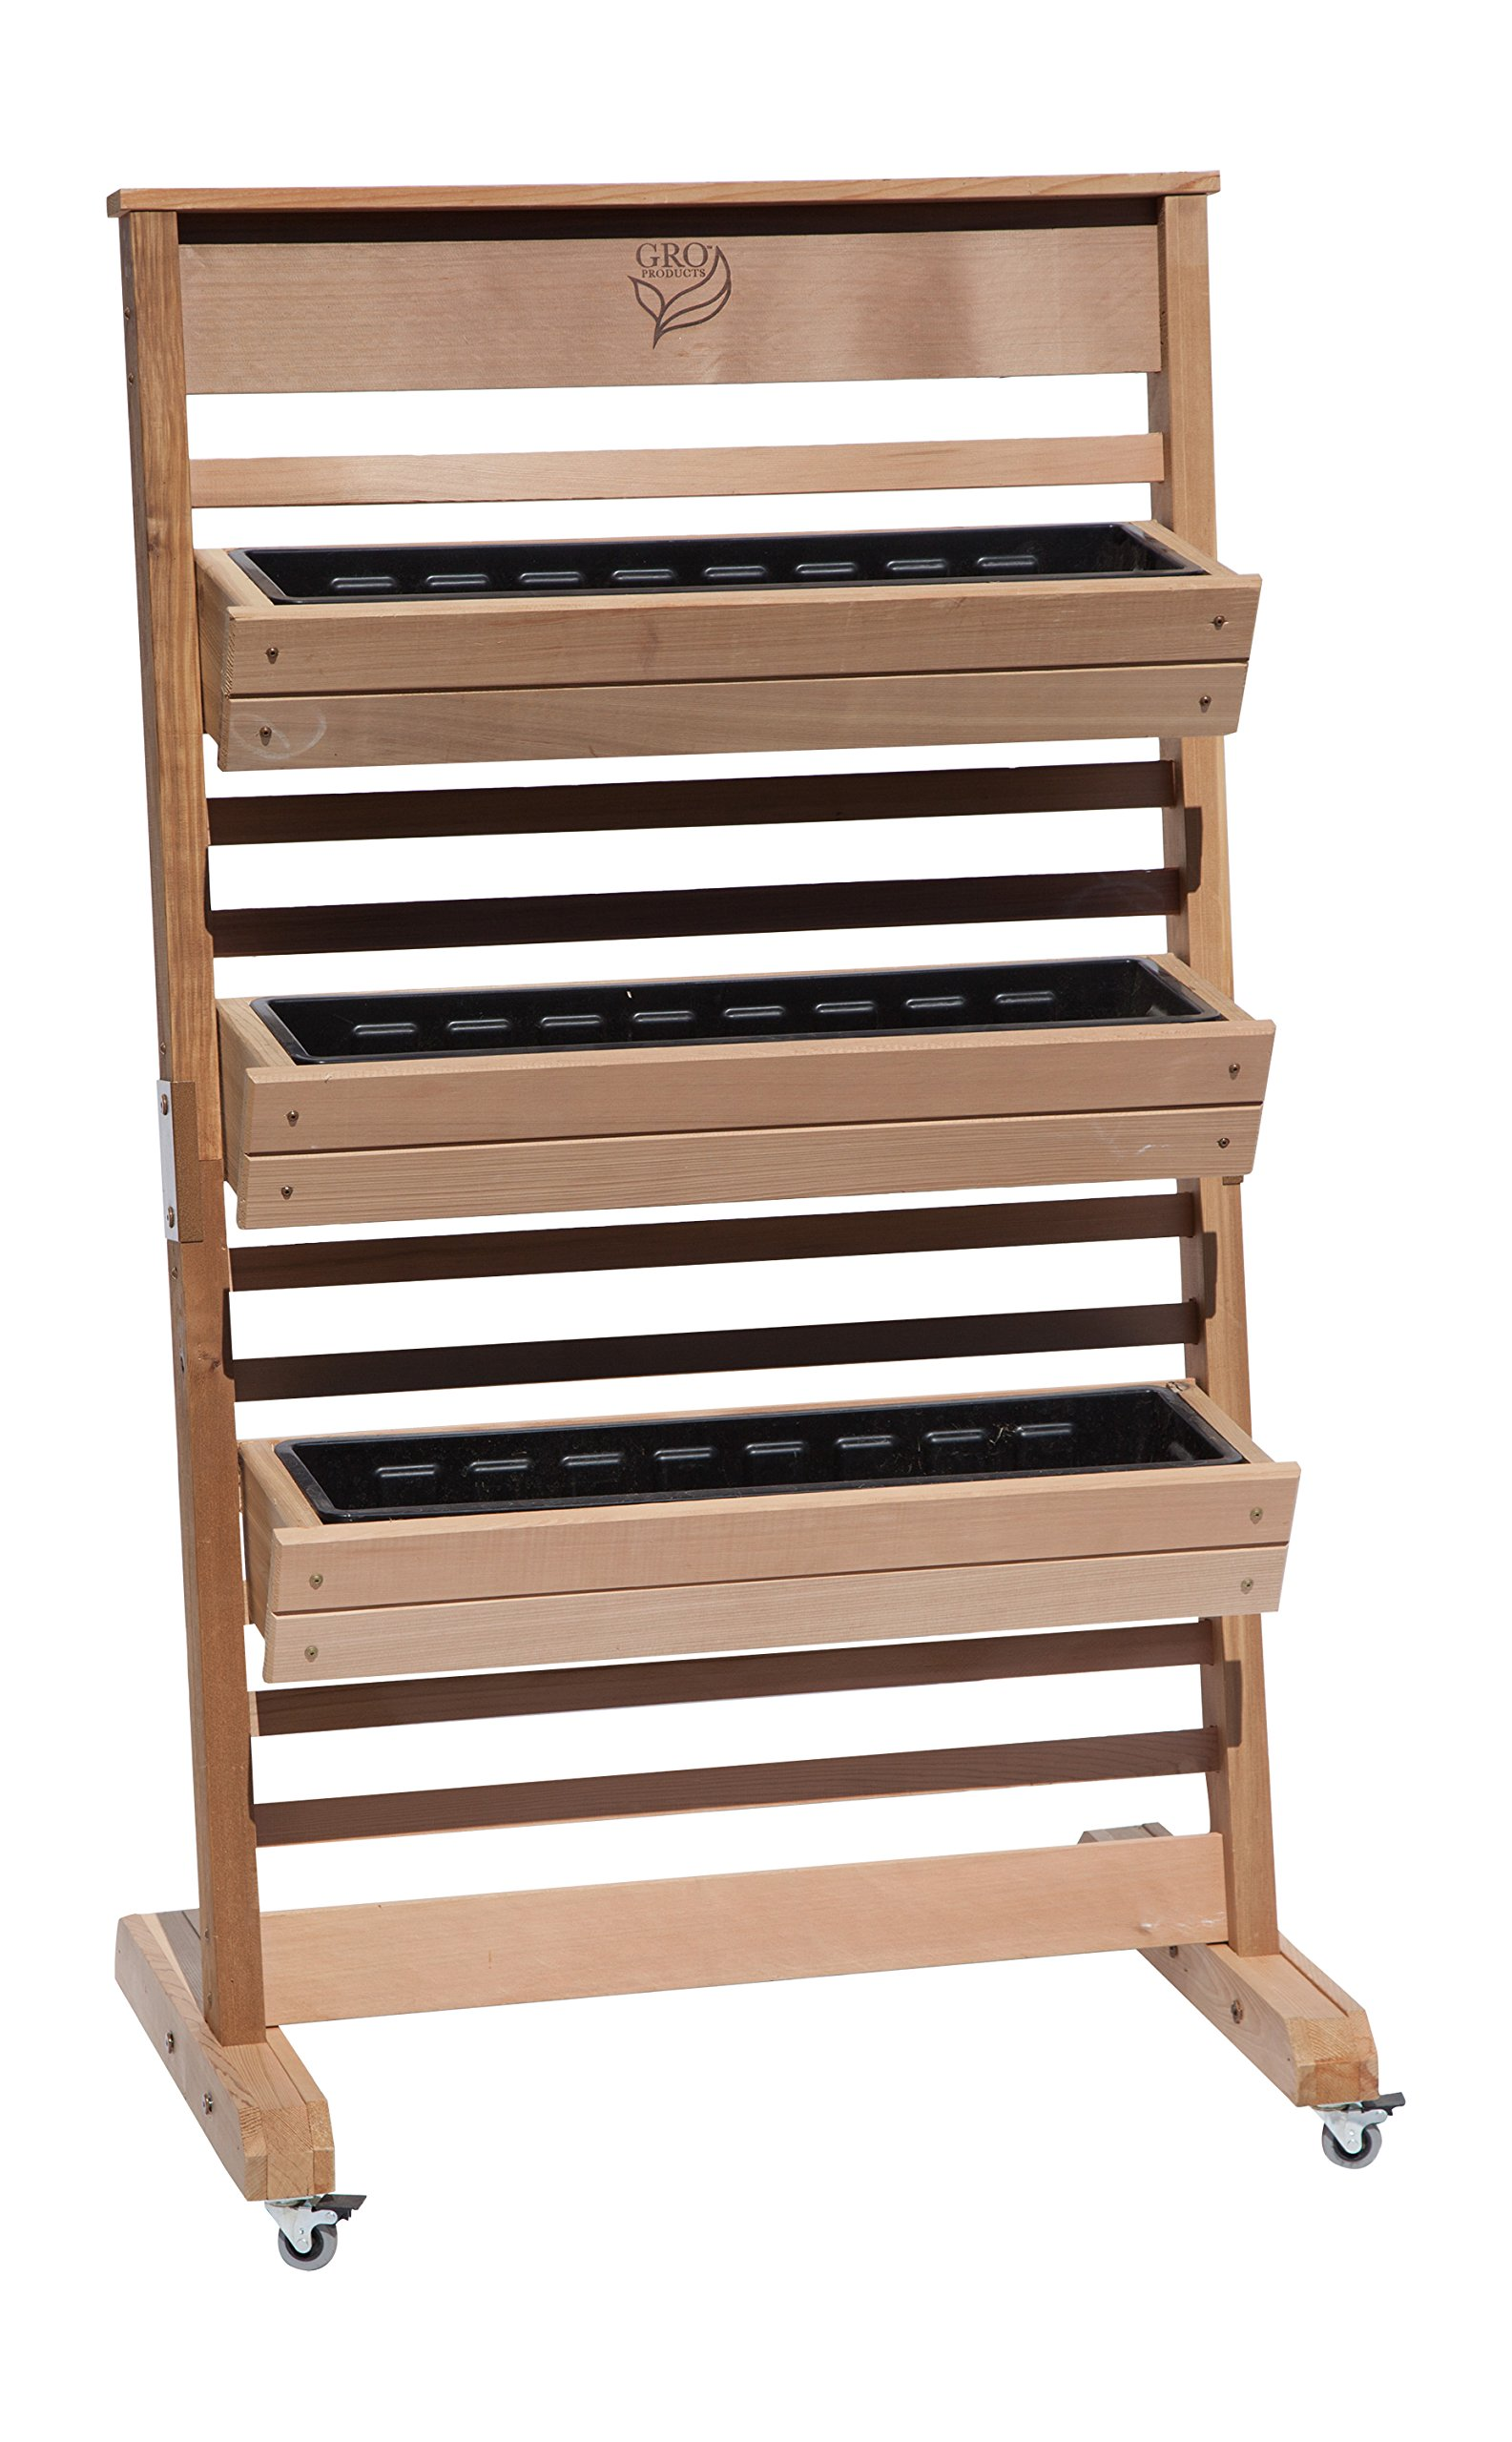 GRO Products Vertical GRO System with 3-Planter Boxes and Casters, 30-Inch by 58-Inch